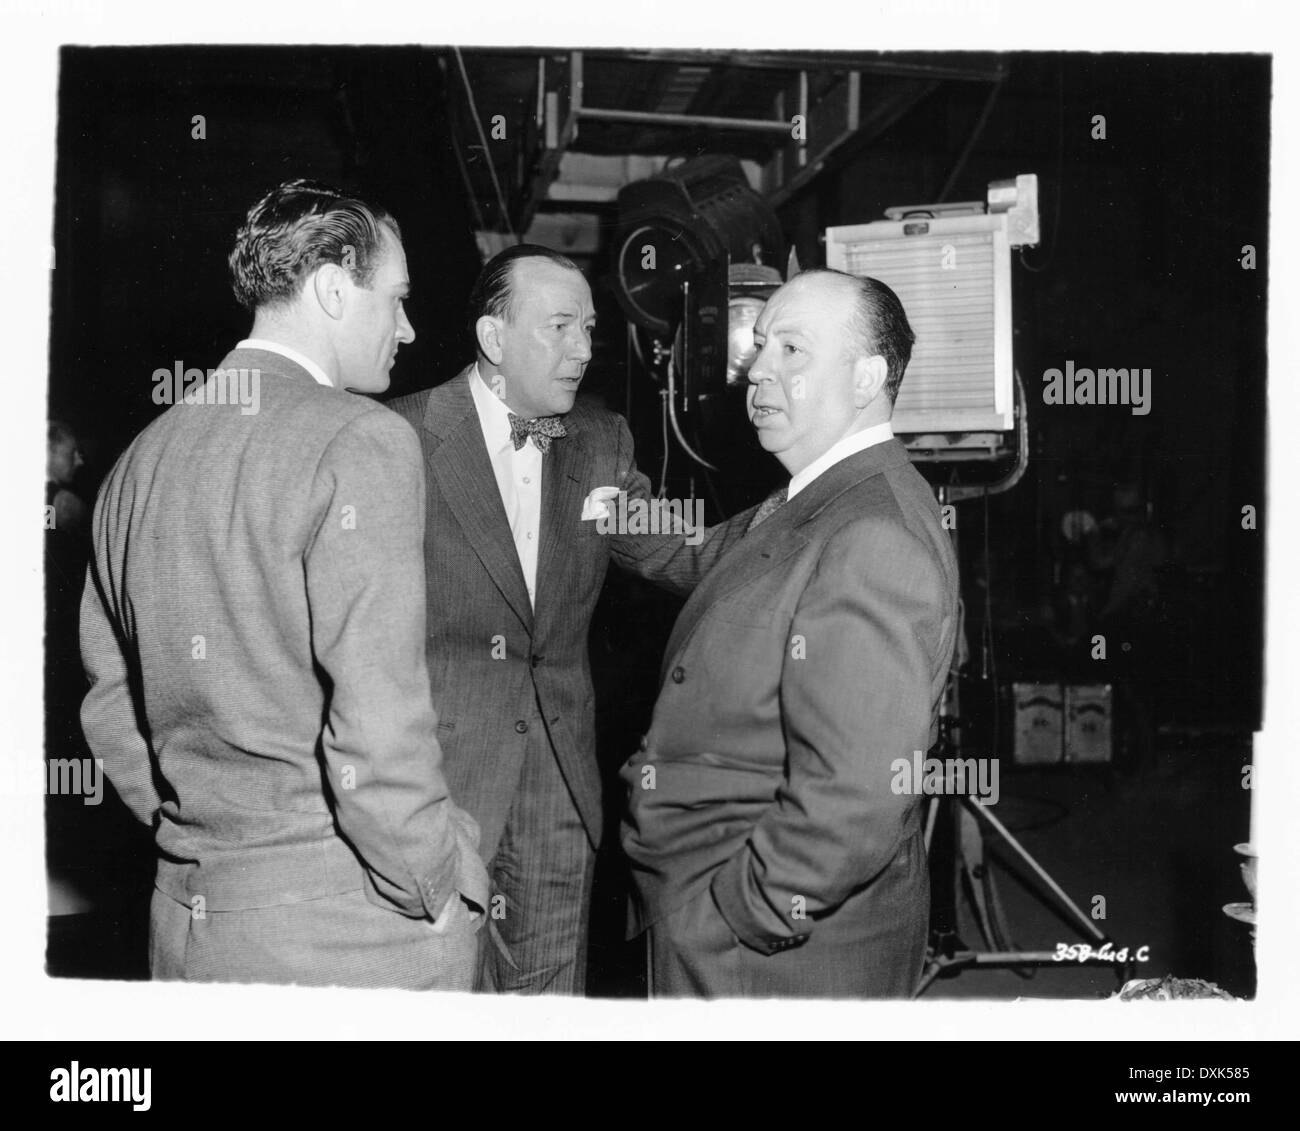 UNIDENTIFIED MAN AND NOEL COWARD VISITING ALFRED HITCHCOCK O - Stock Image